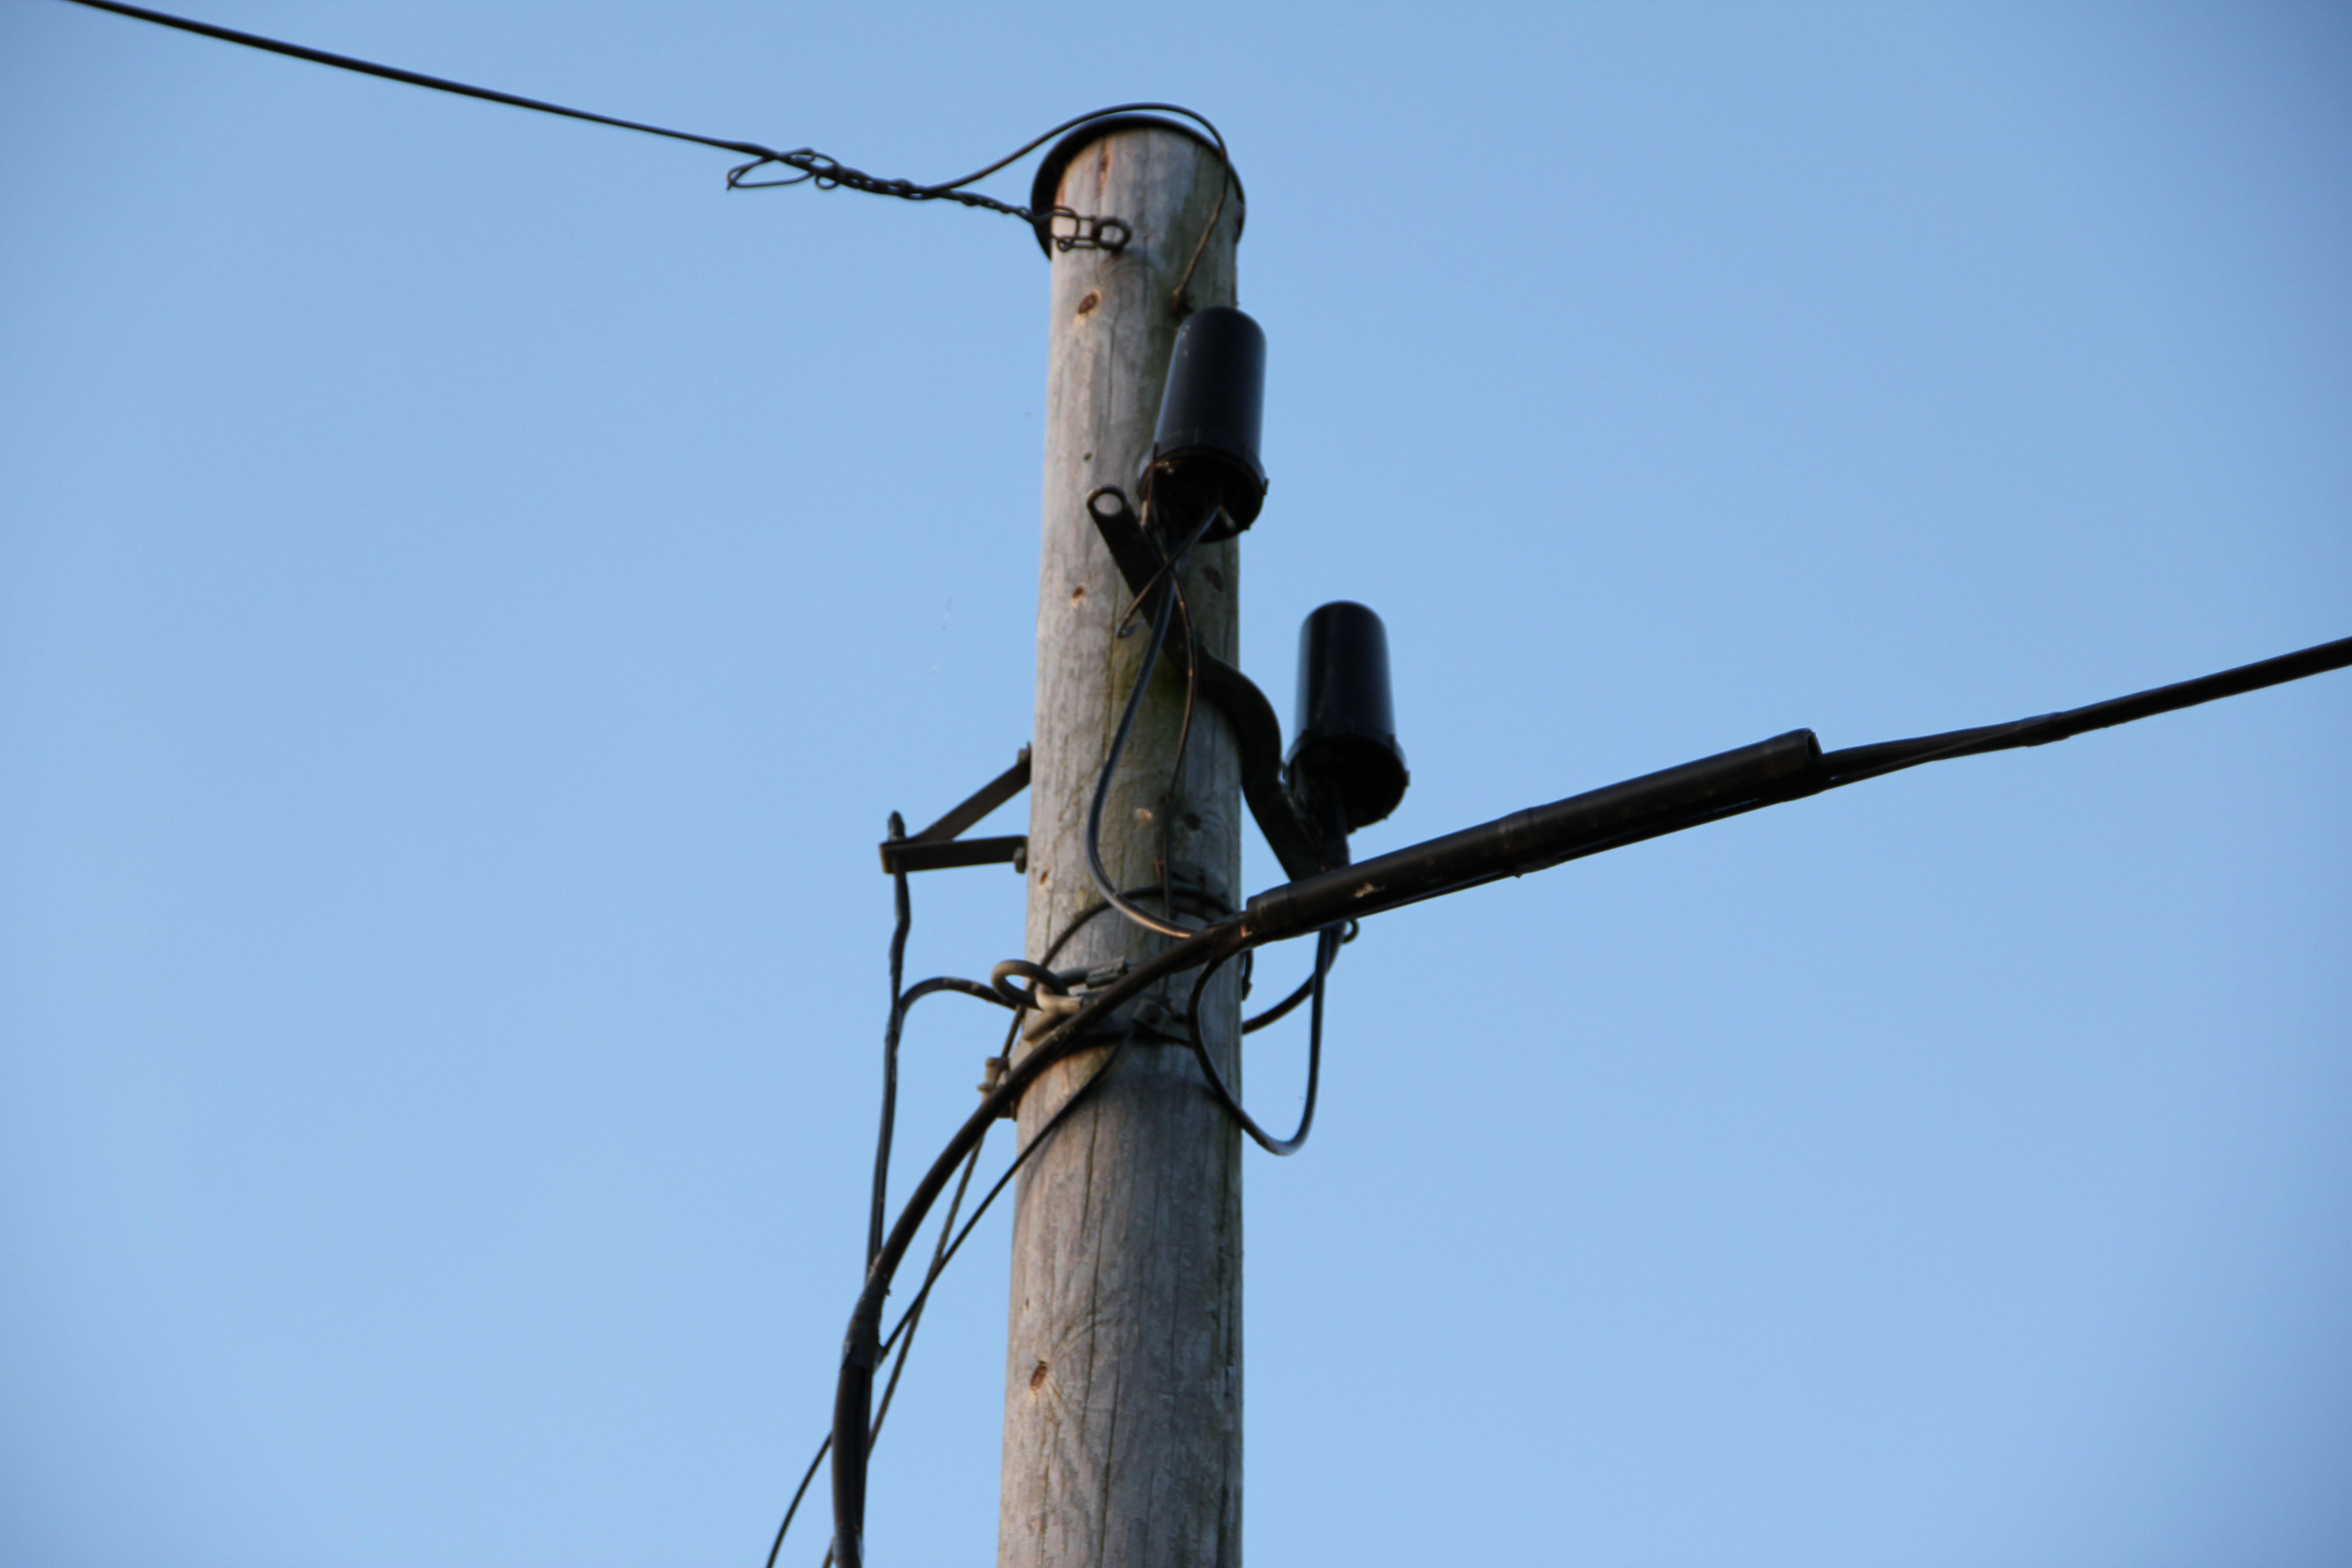 File:Telephone pole.jpg - Wikimedia Commons